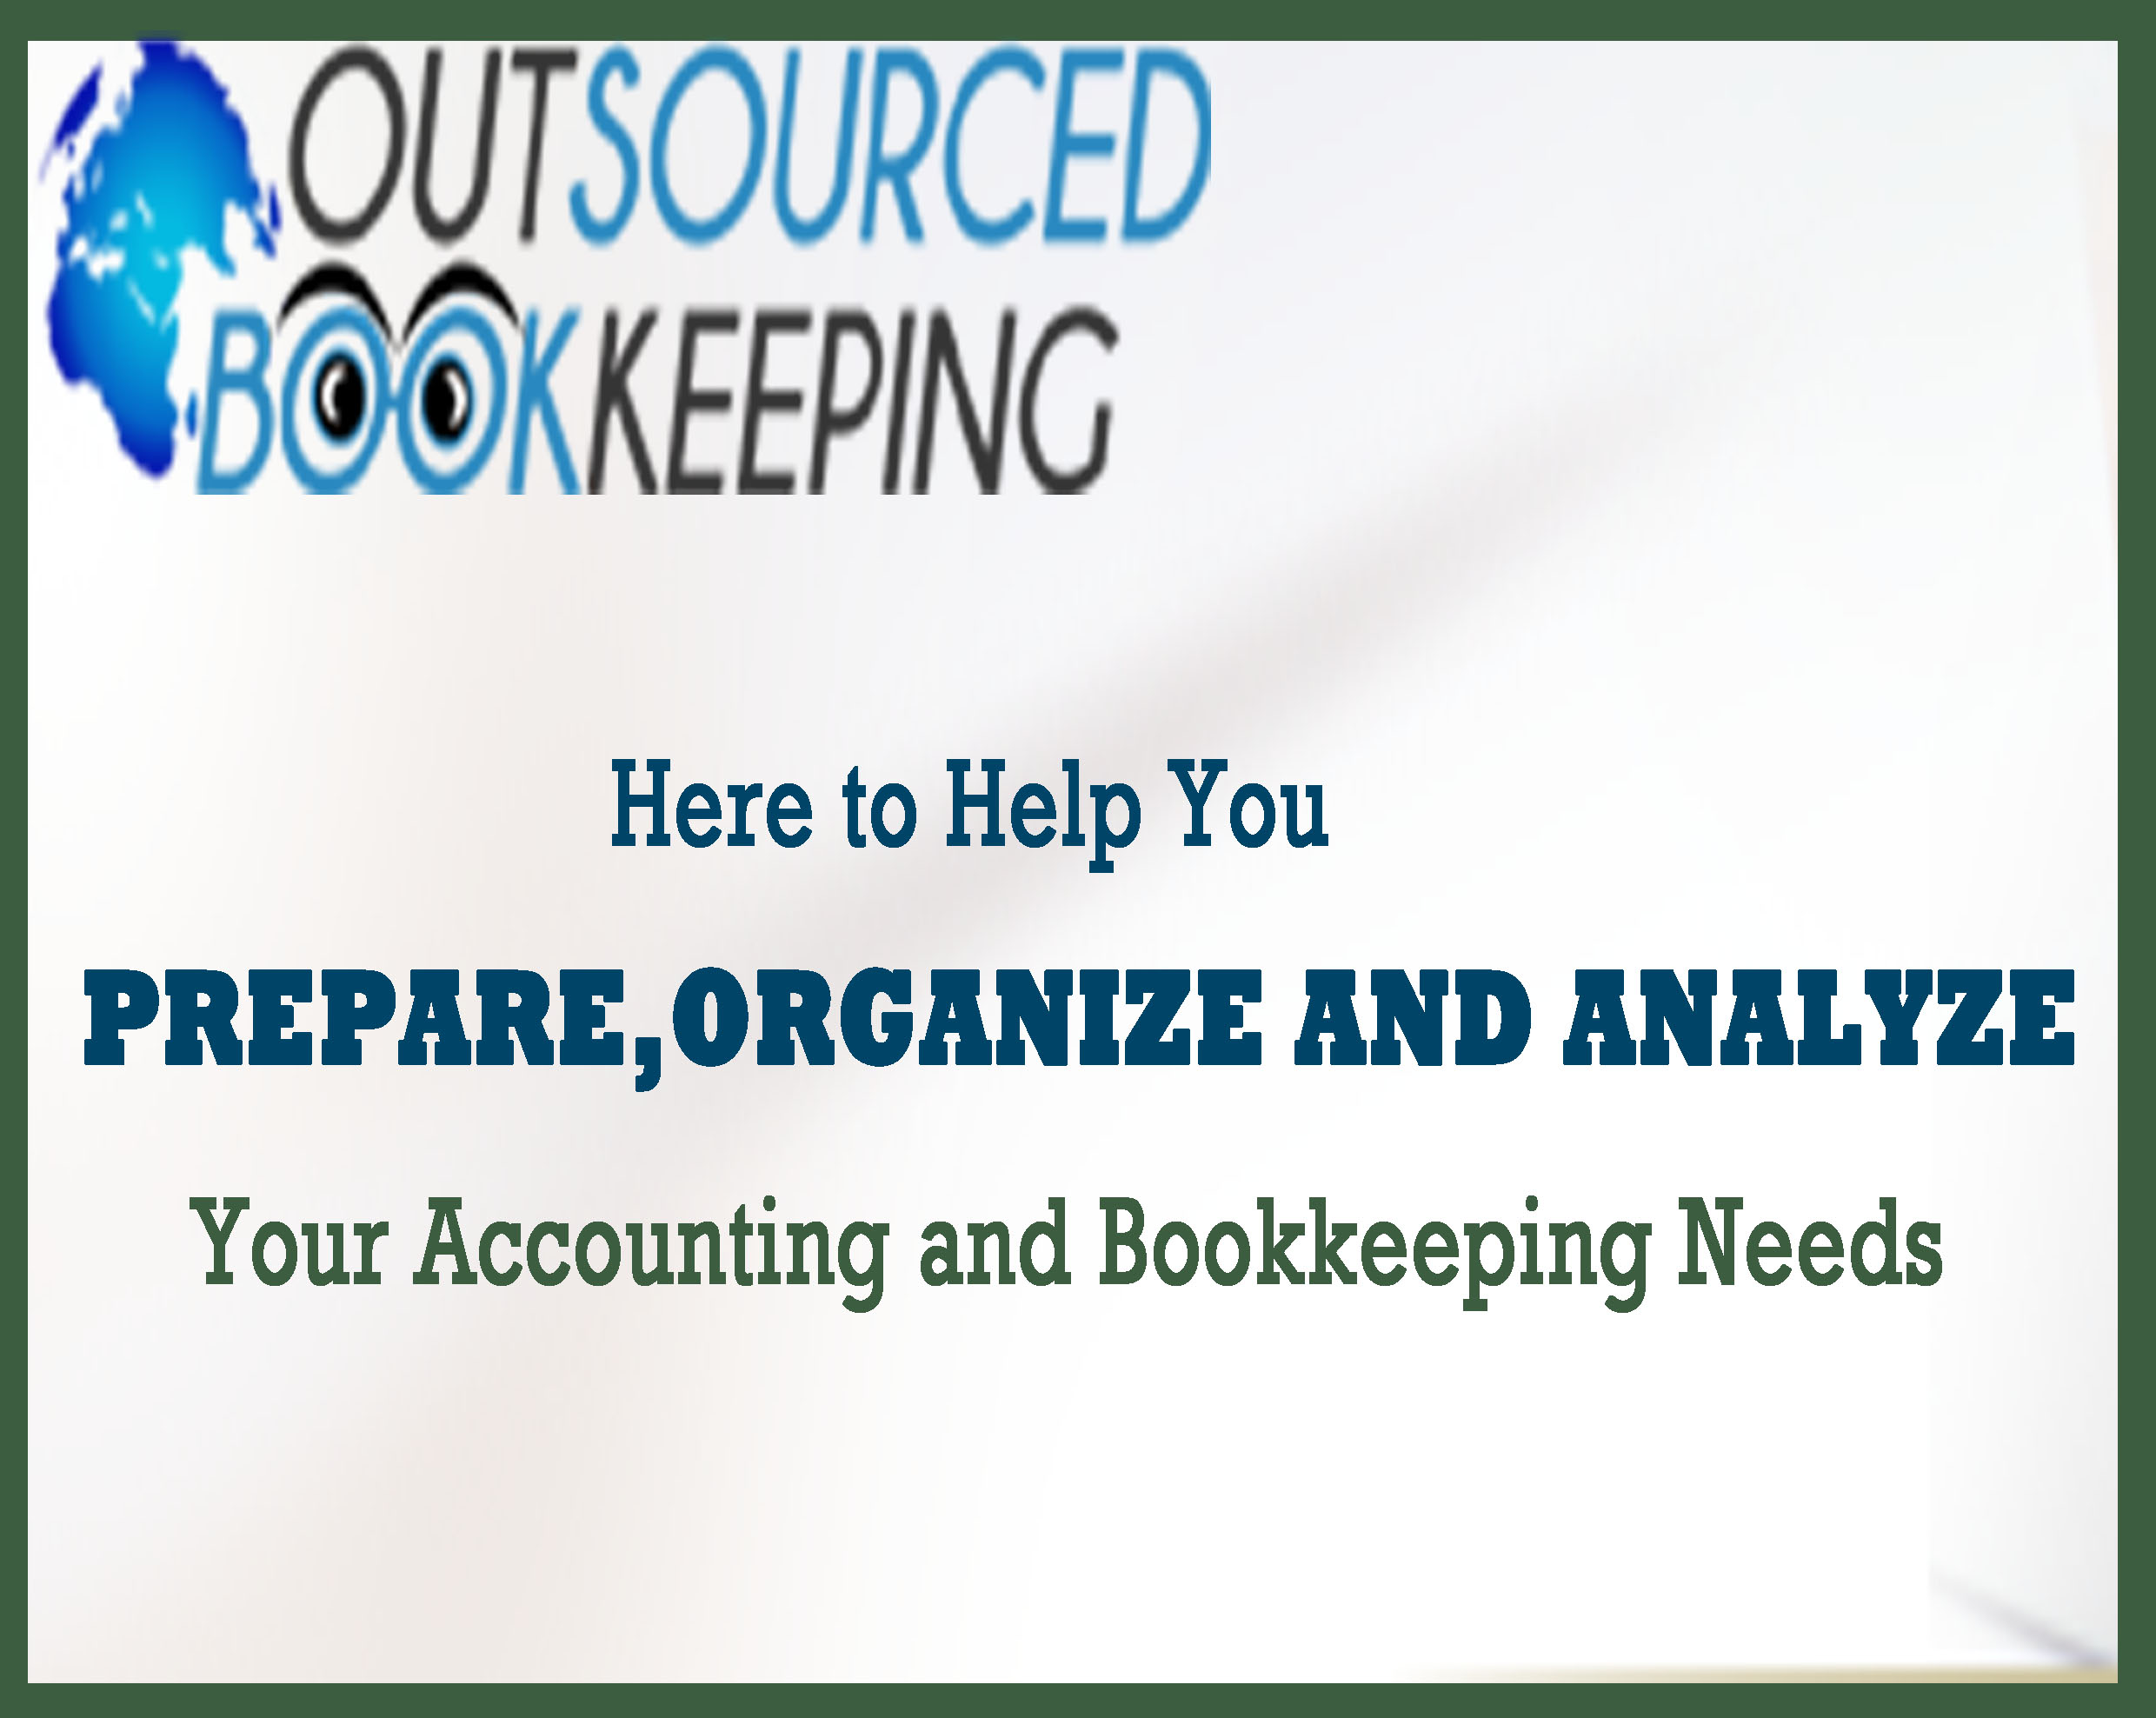 Outsourcing of Bookkeeping and Accounting